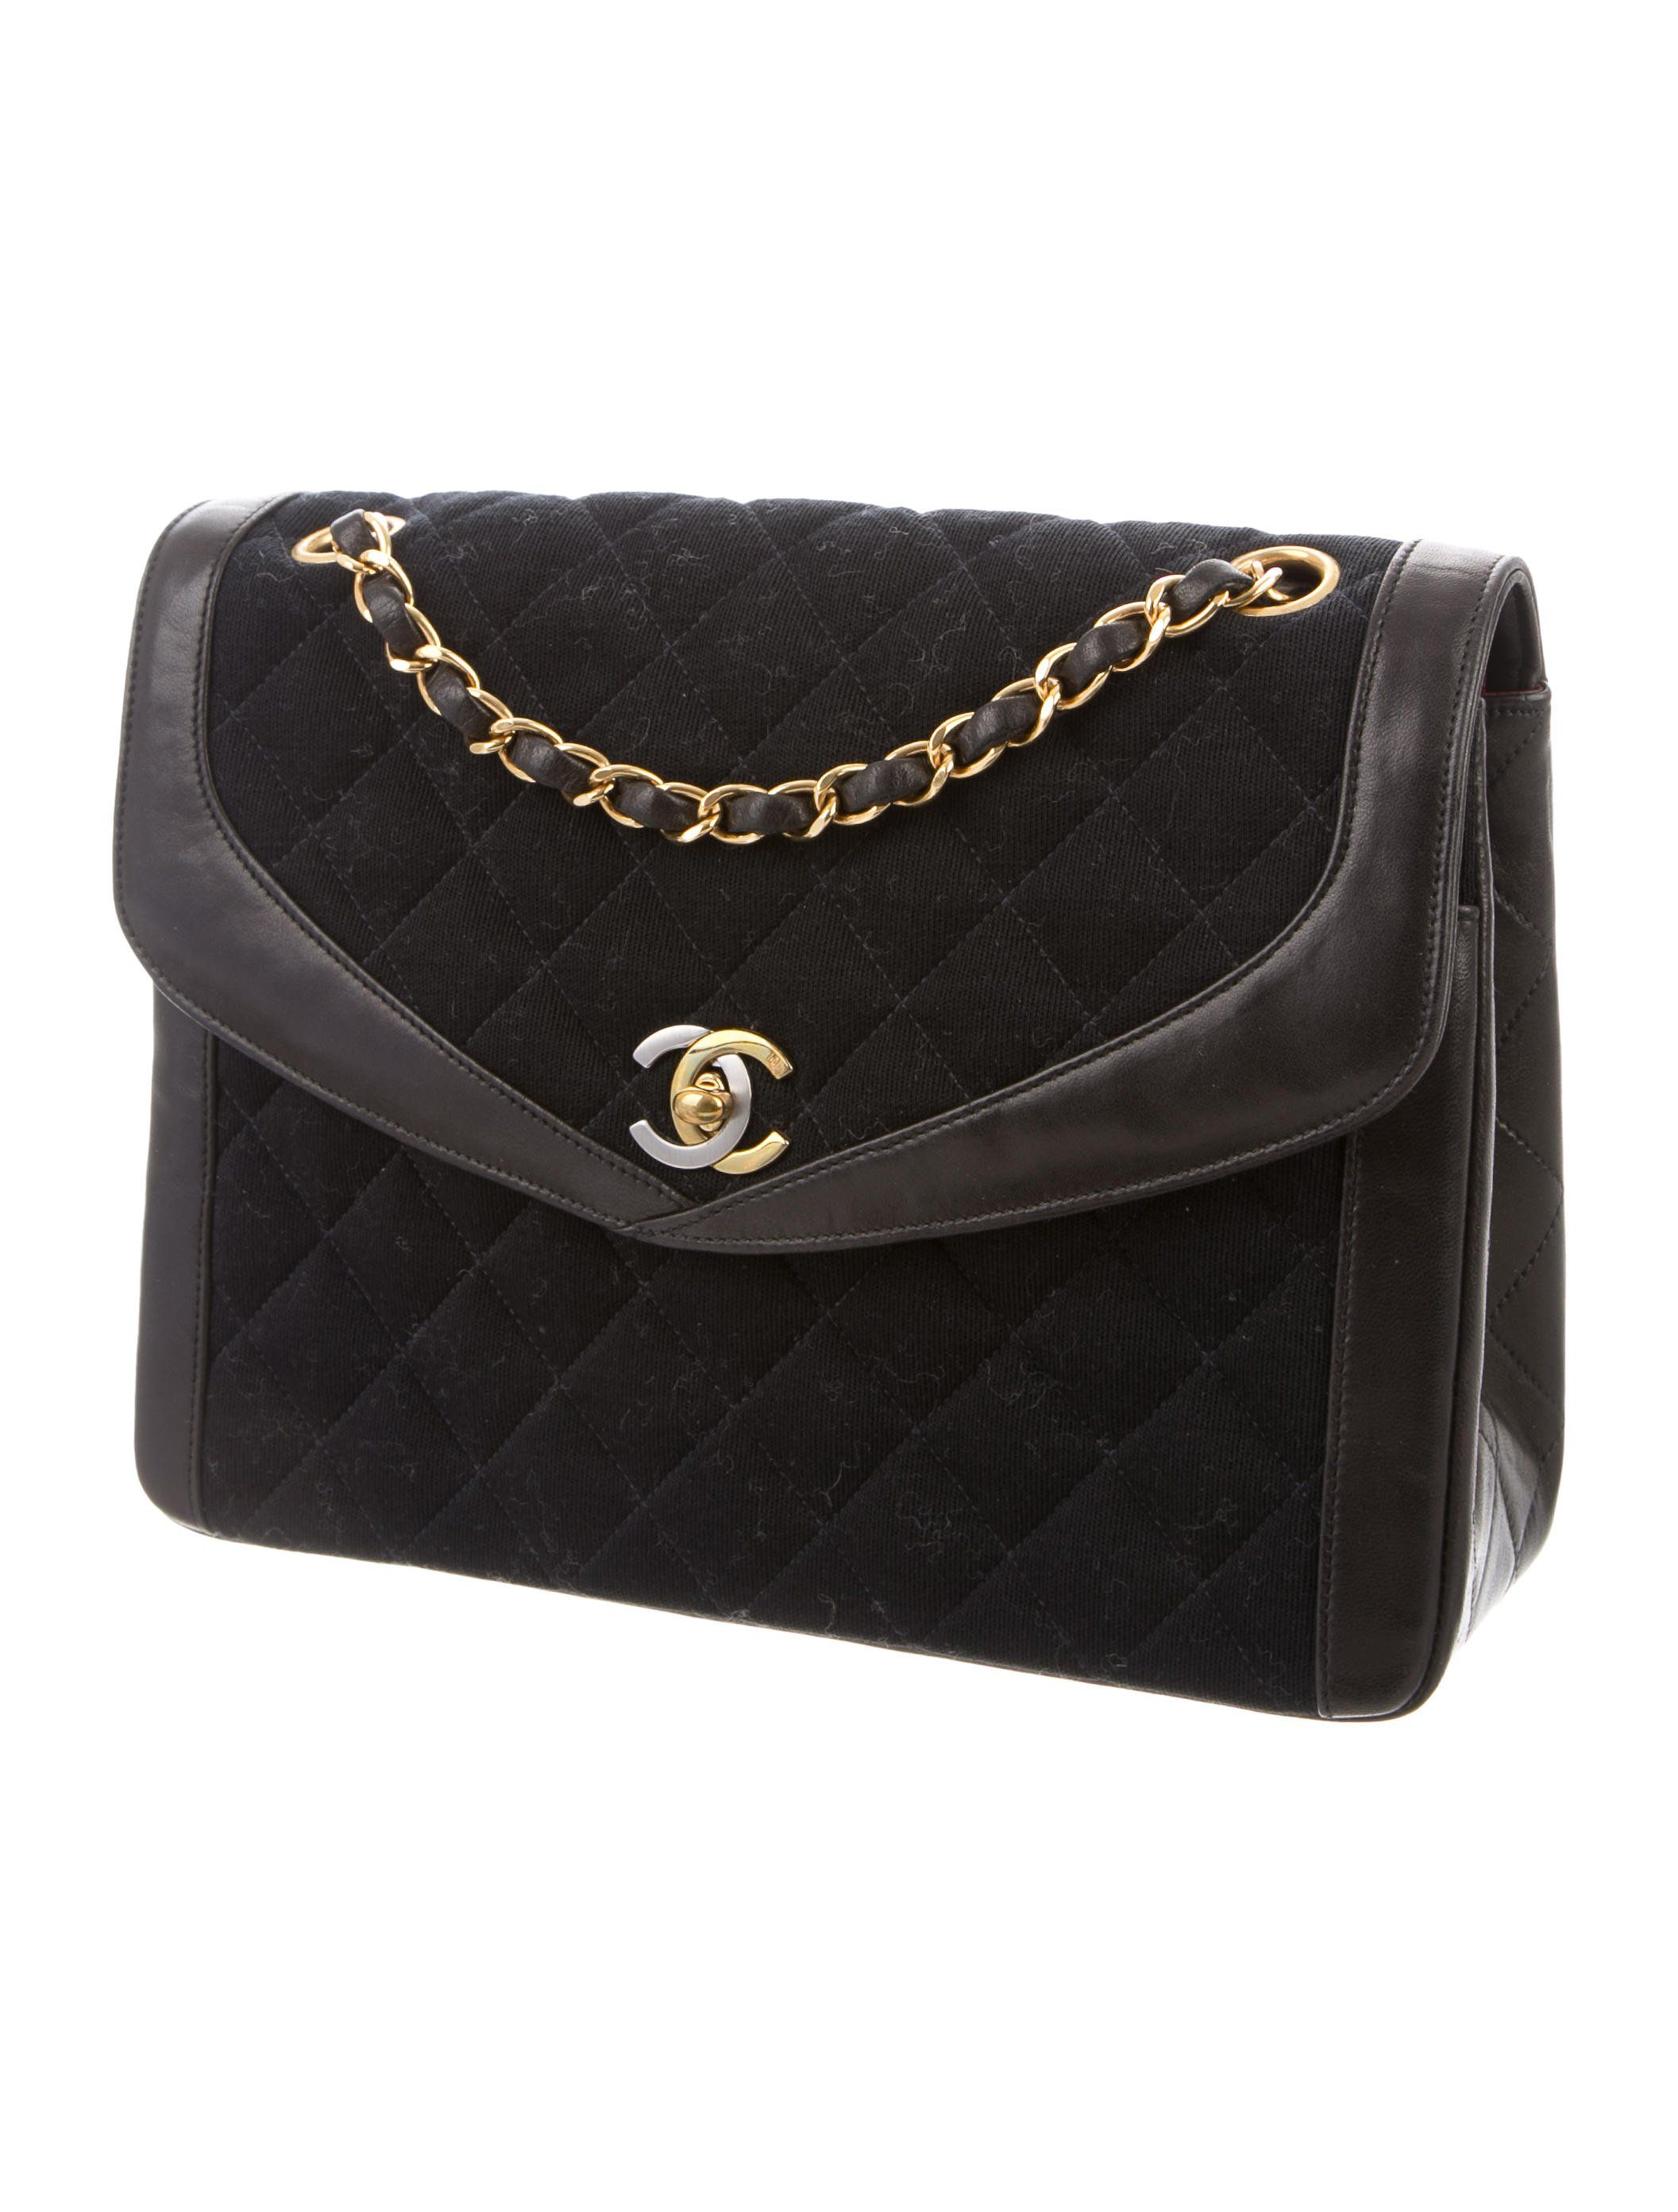 c1bd636e9d13 Black quilted woven Chanel Vintage Jersey Flap Bag with gold-tone and  silver-tone hardware